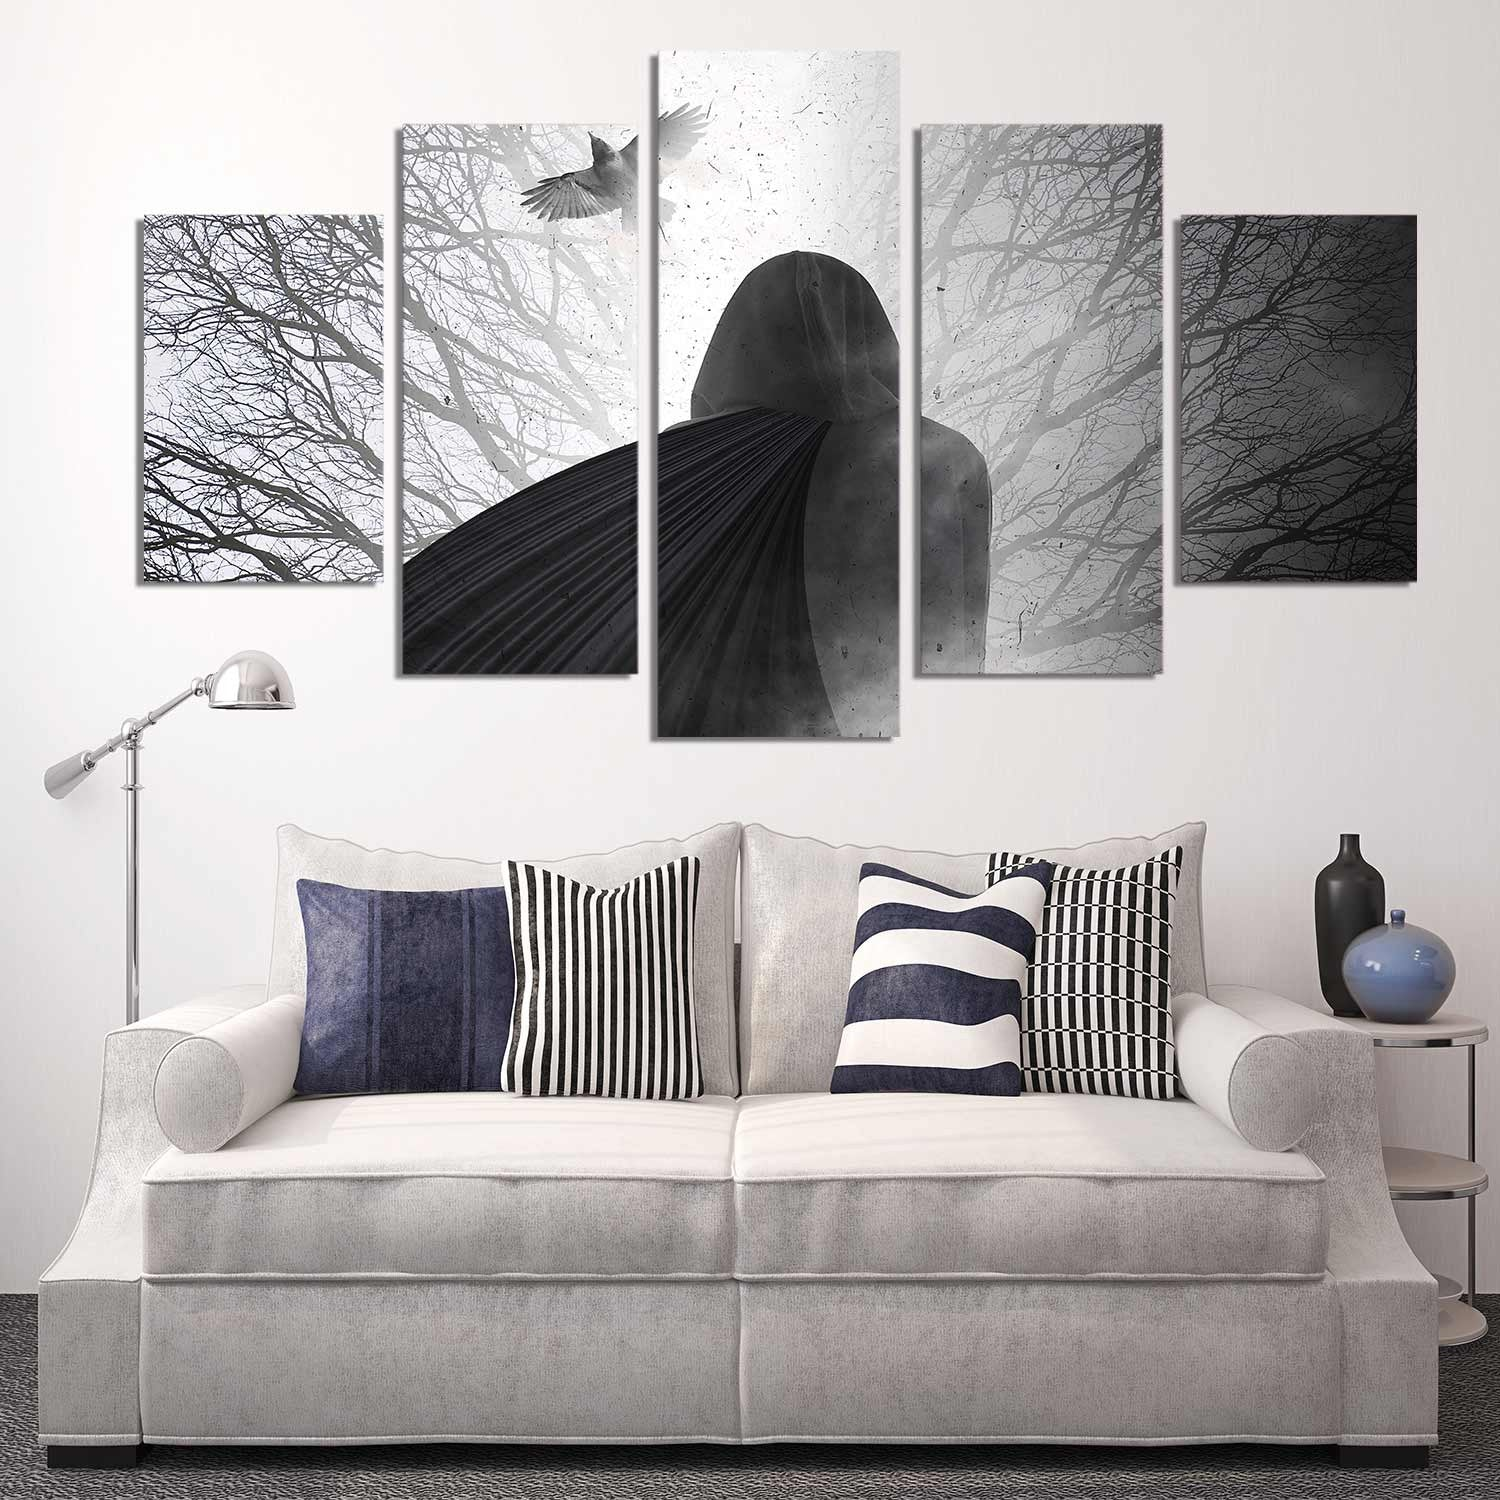 The Man in the Cloak 5 Piece Canvas